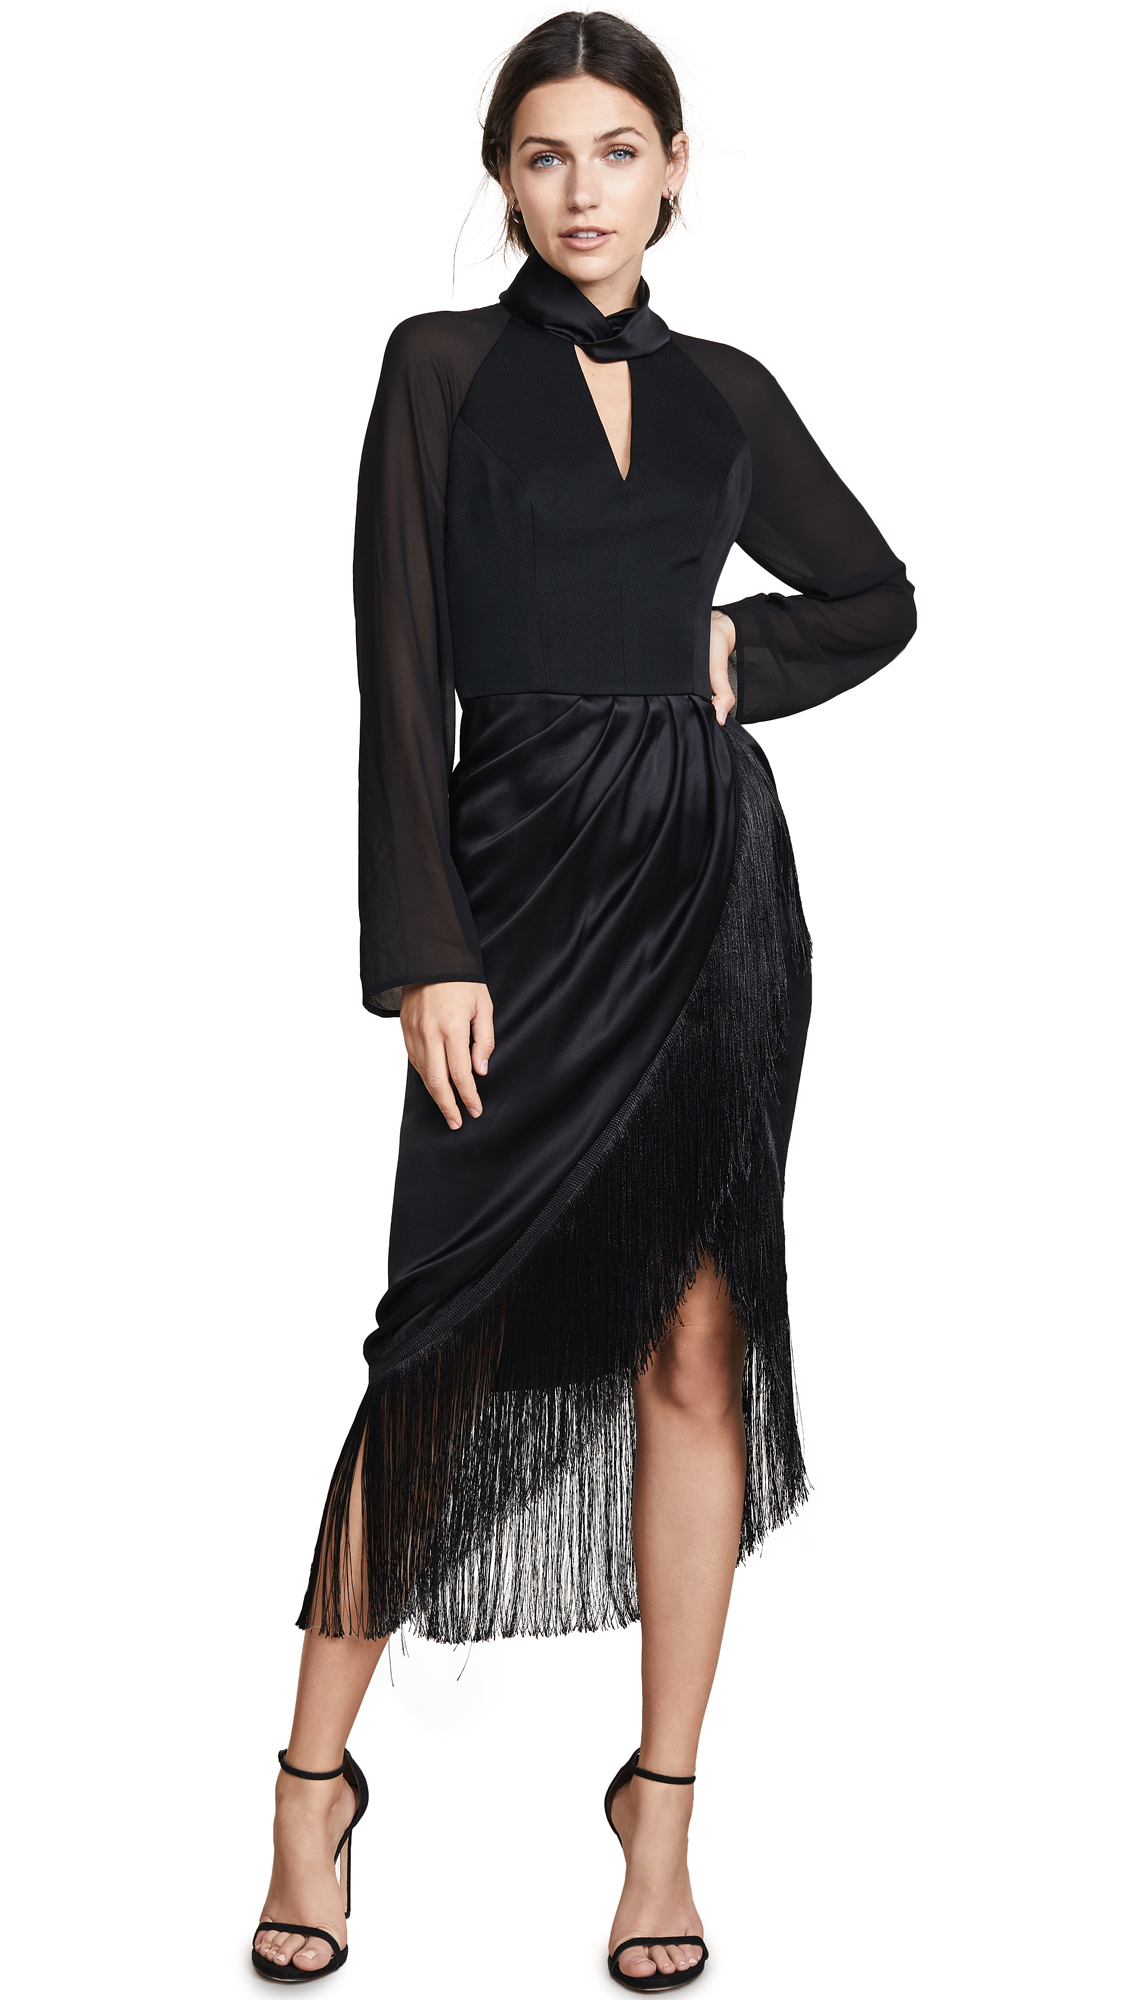 Vatanika Long Sleeve Dress - Black